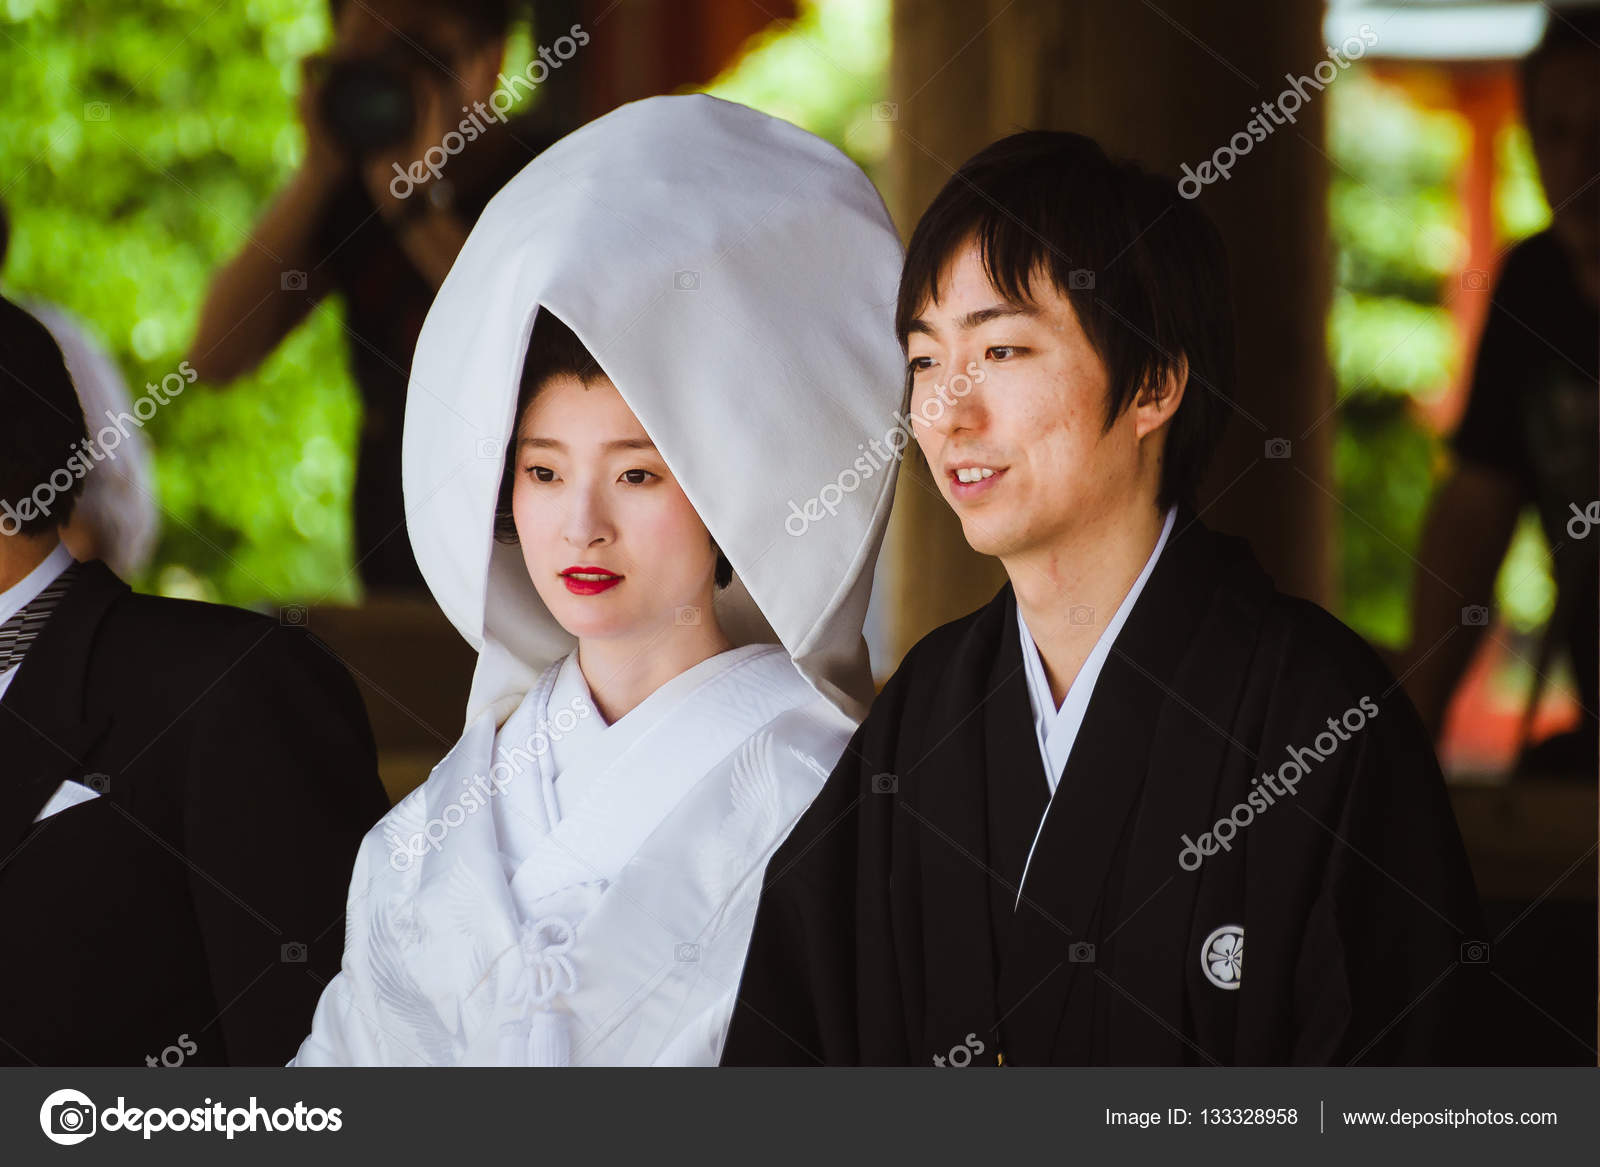 depositphotos 133328958 stock photo japanese bride and groom during